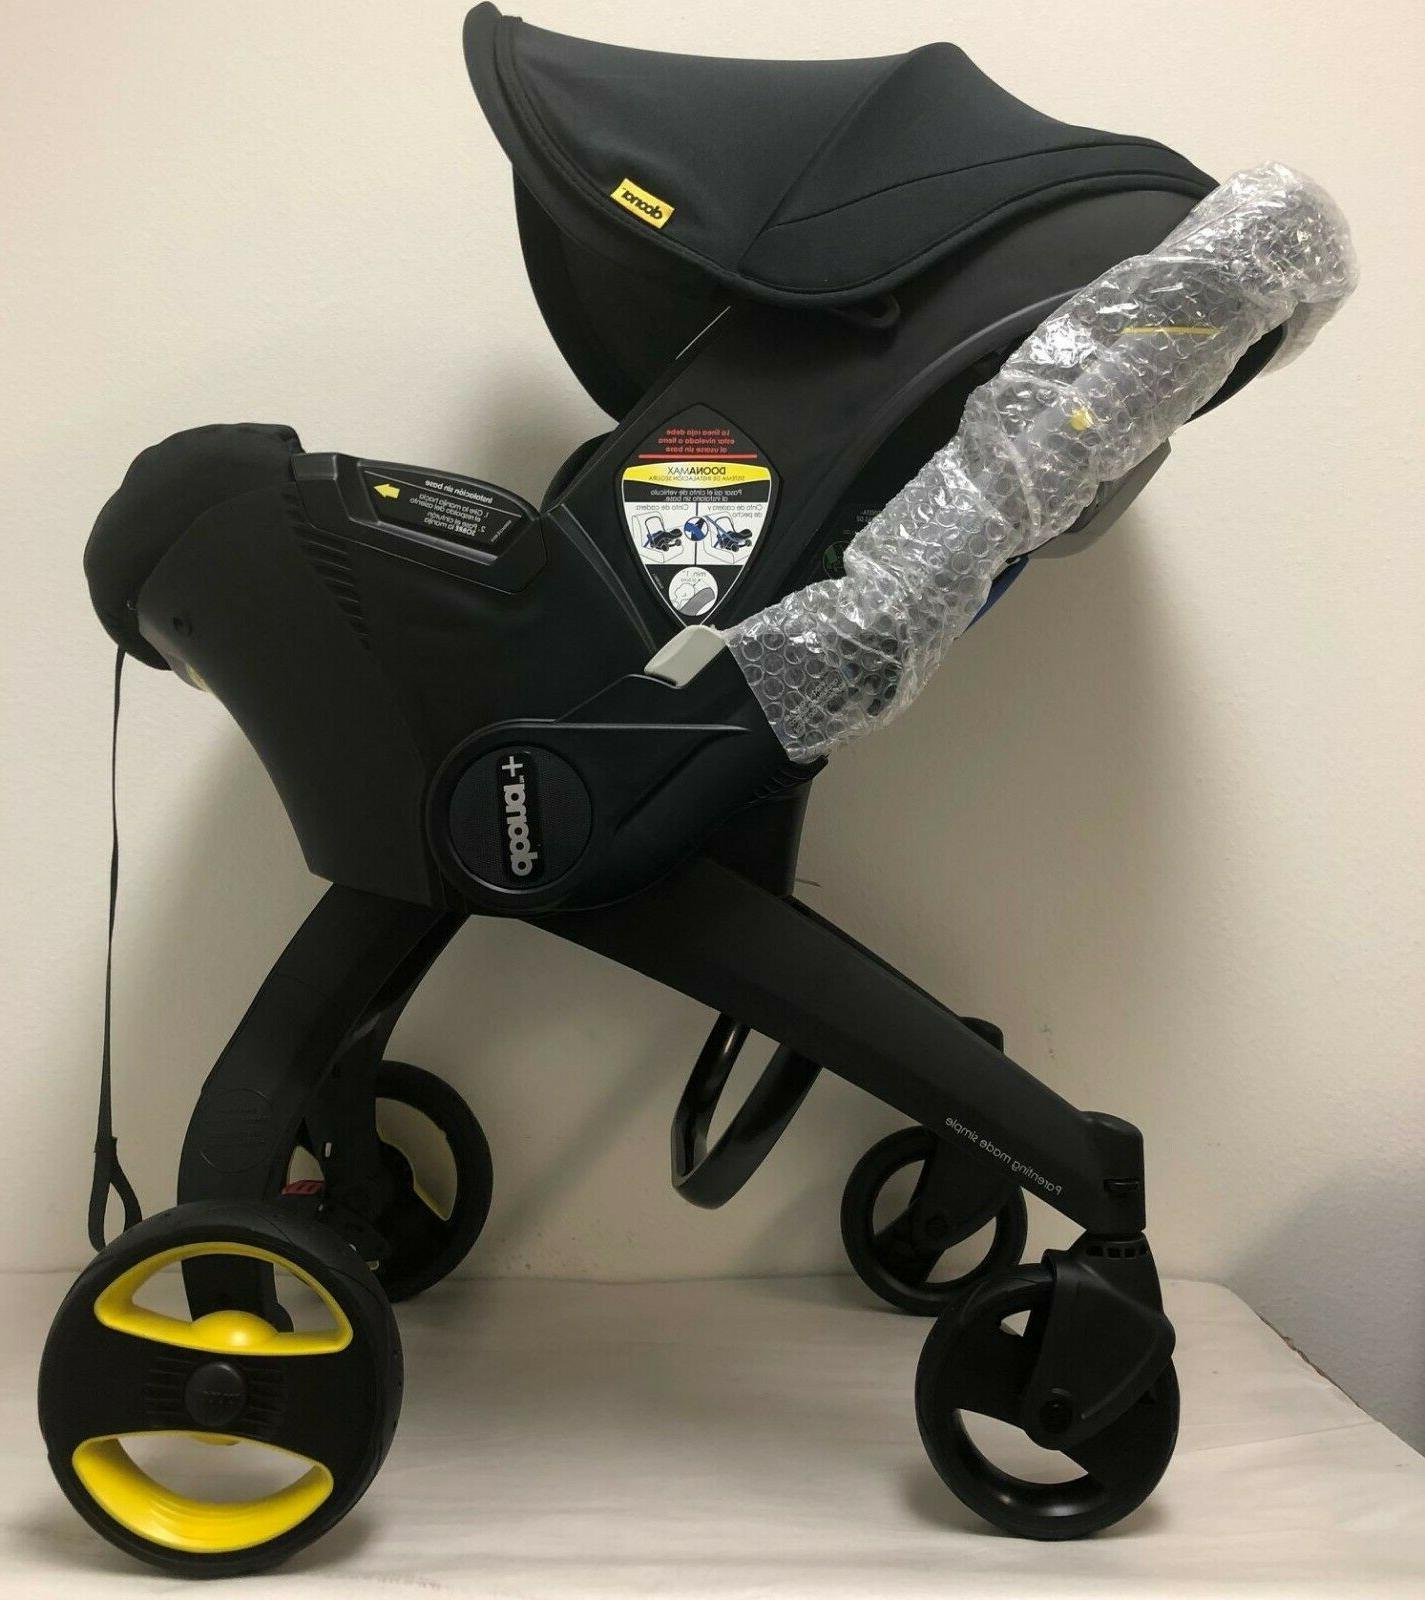 Doona Infant Seat Stroller Black with NEW